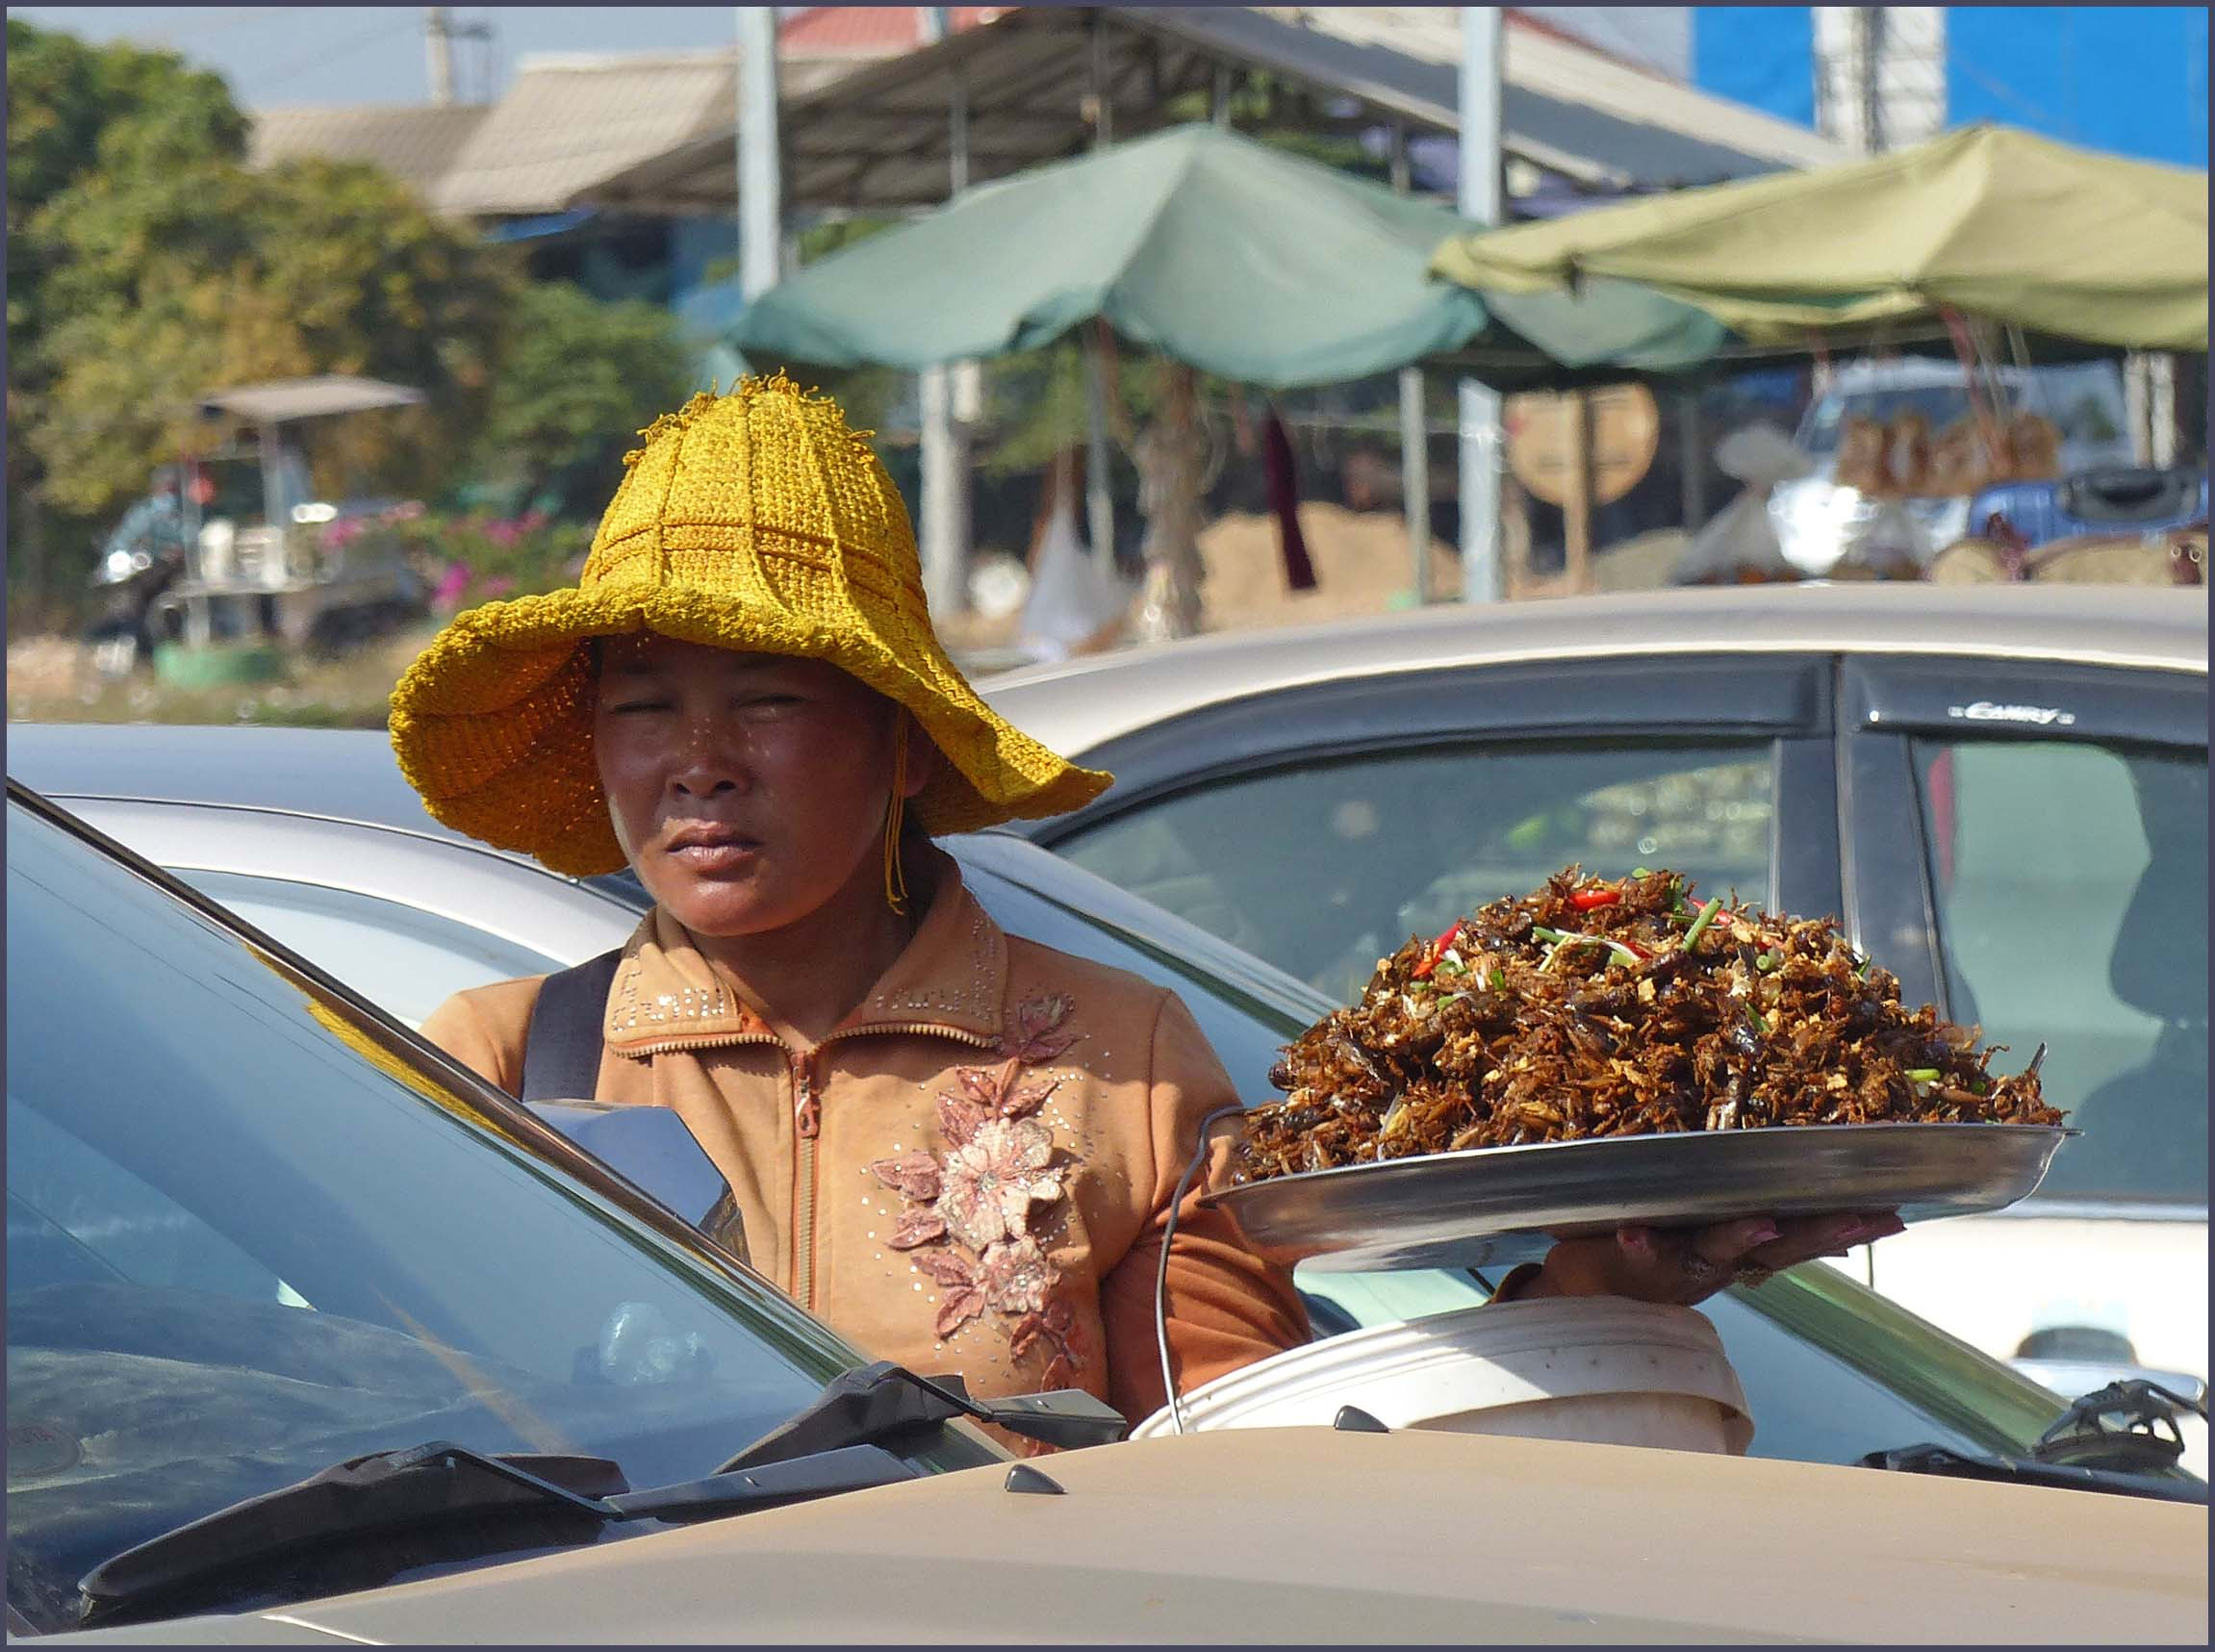 Lady in yellow hat with plate of fried insects in a car park